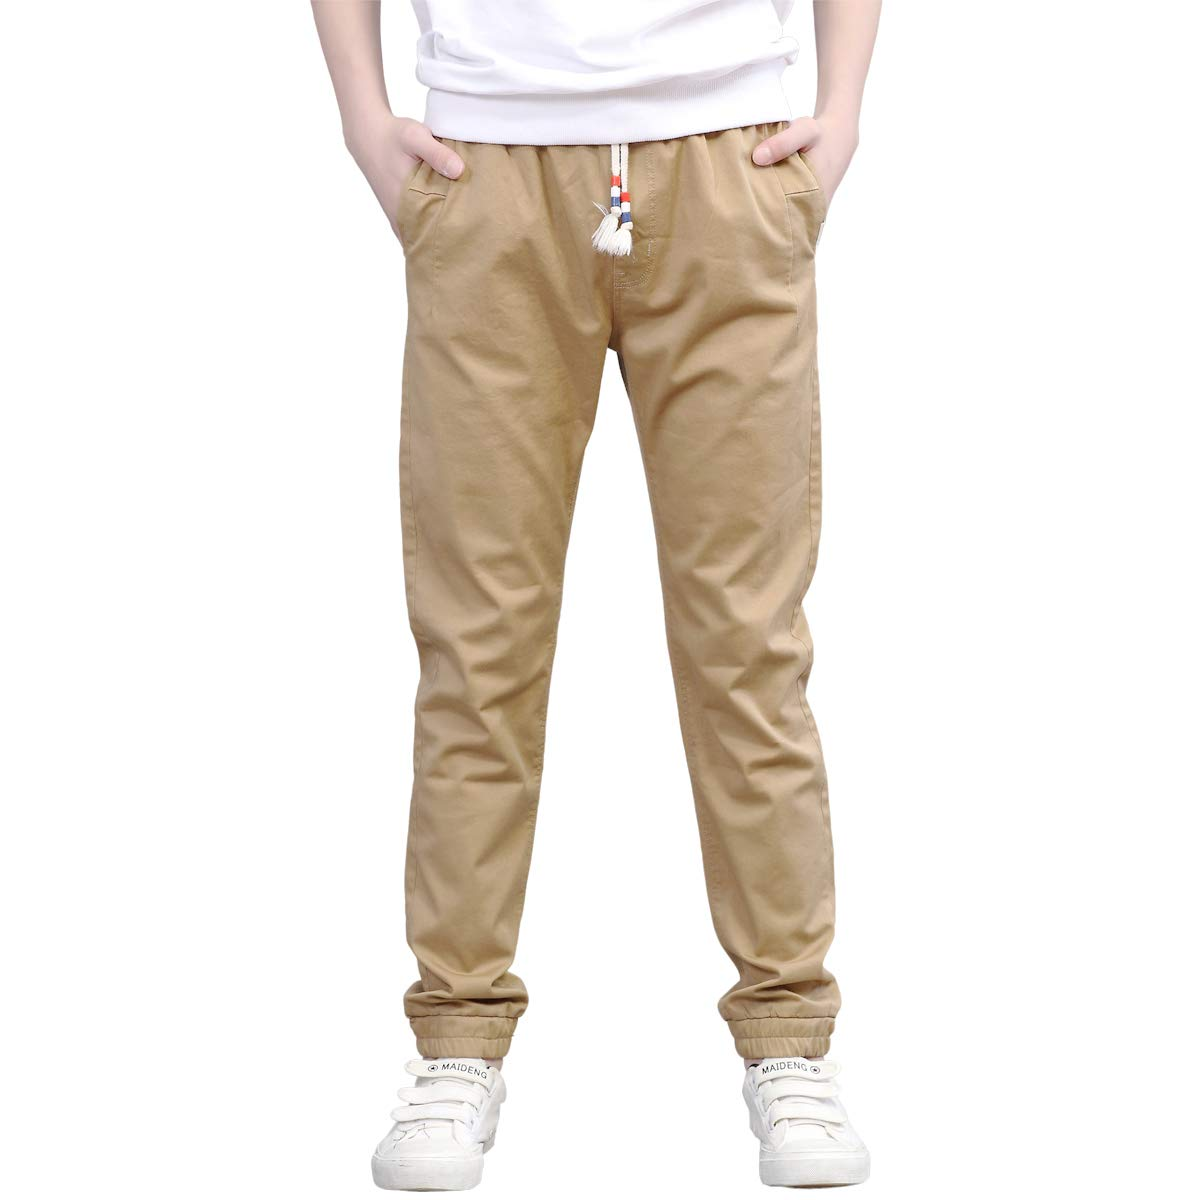 CNMUDONSI Jogging Pants for Boys 7-16 Years Old Kids Casual Active Pants Slim Fit (M705-Khaki150)